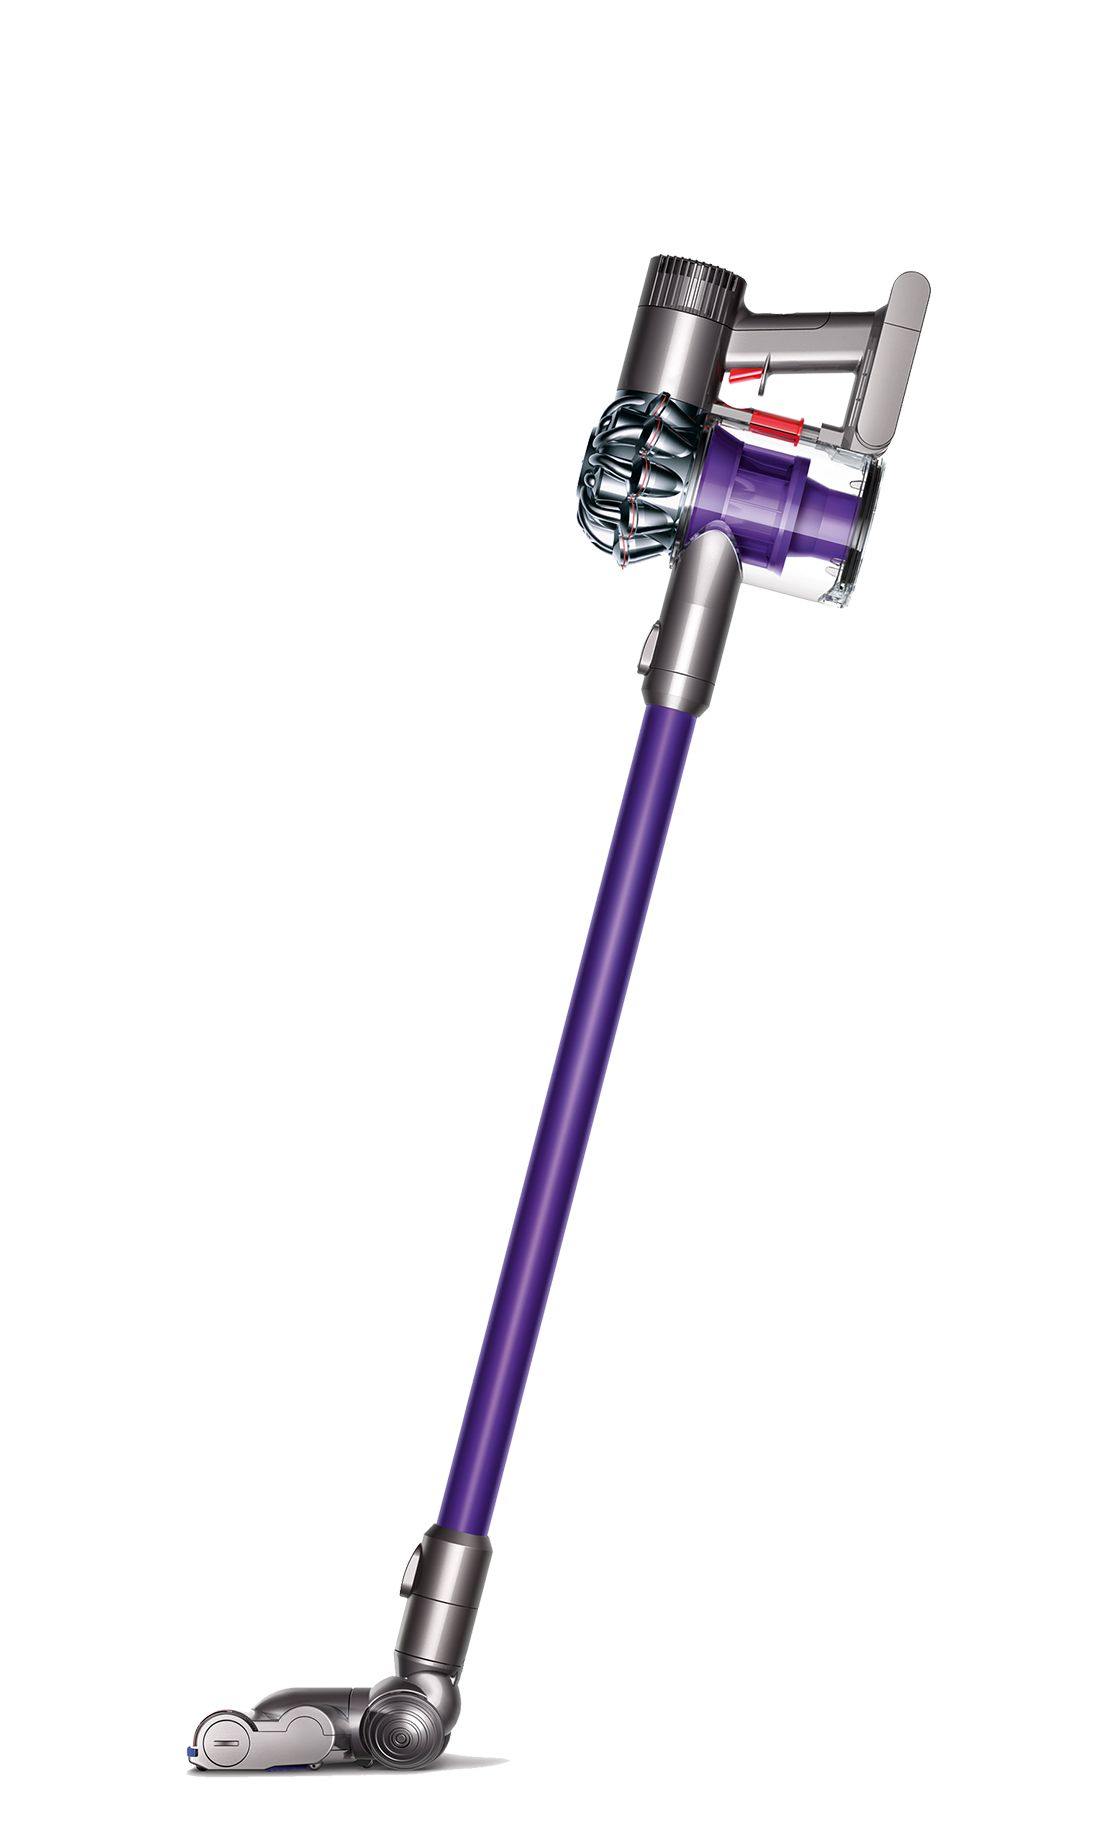 dyson dc59 animal cordless vacuum cleaner - dyson suction power